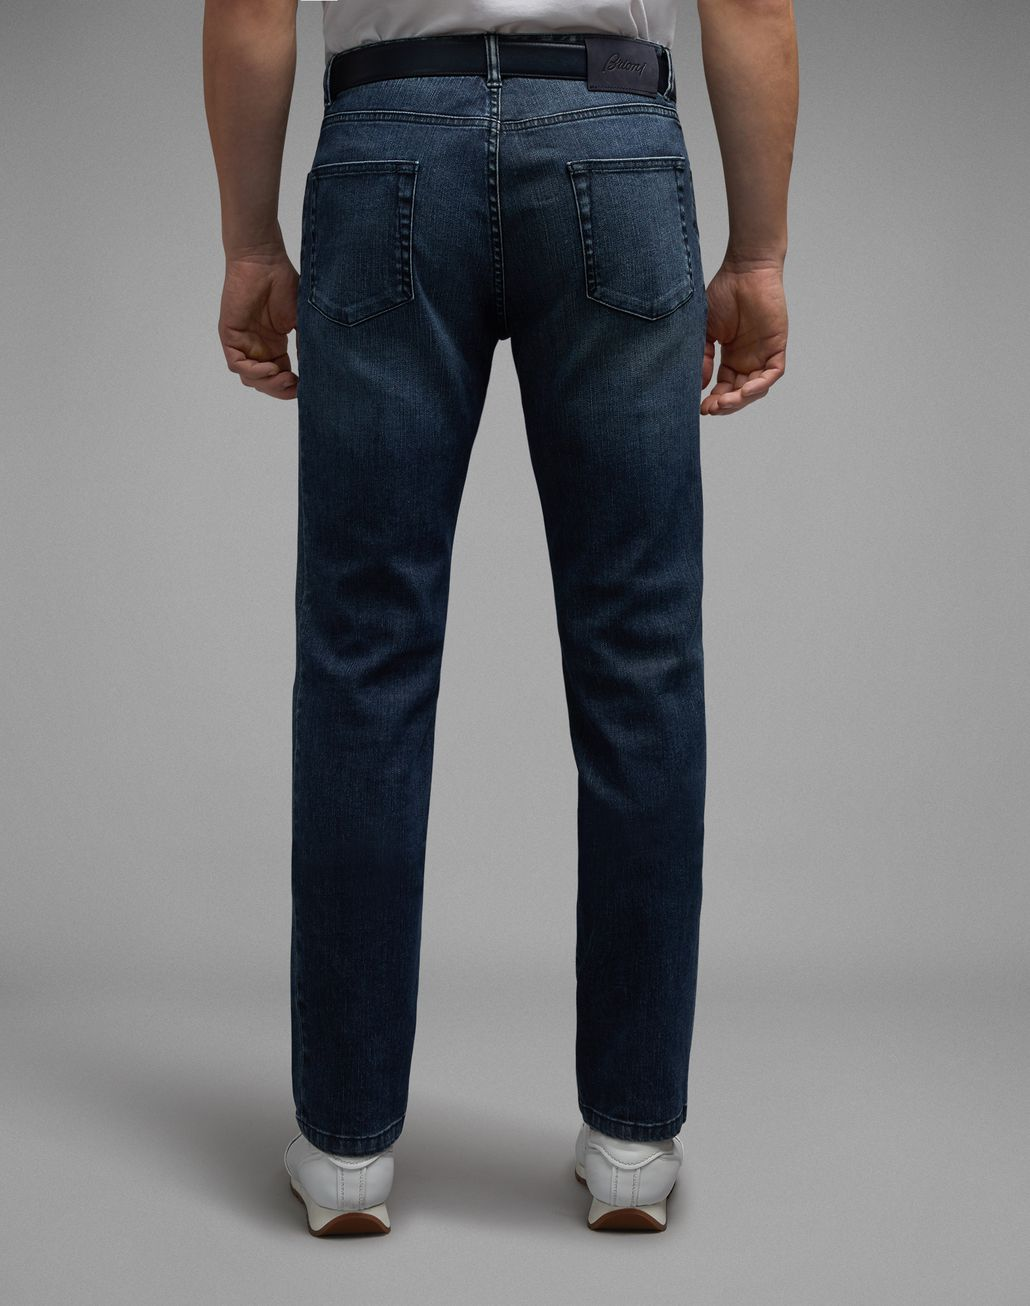 BRIONI Jeans in Marineblau Meribel Denim Herren d